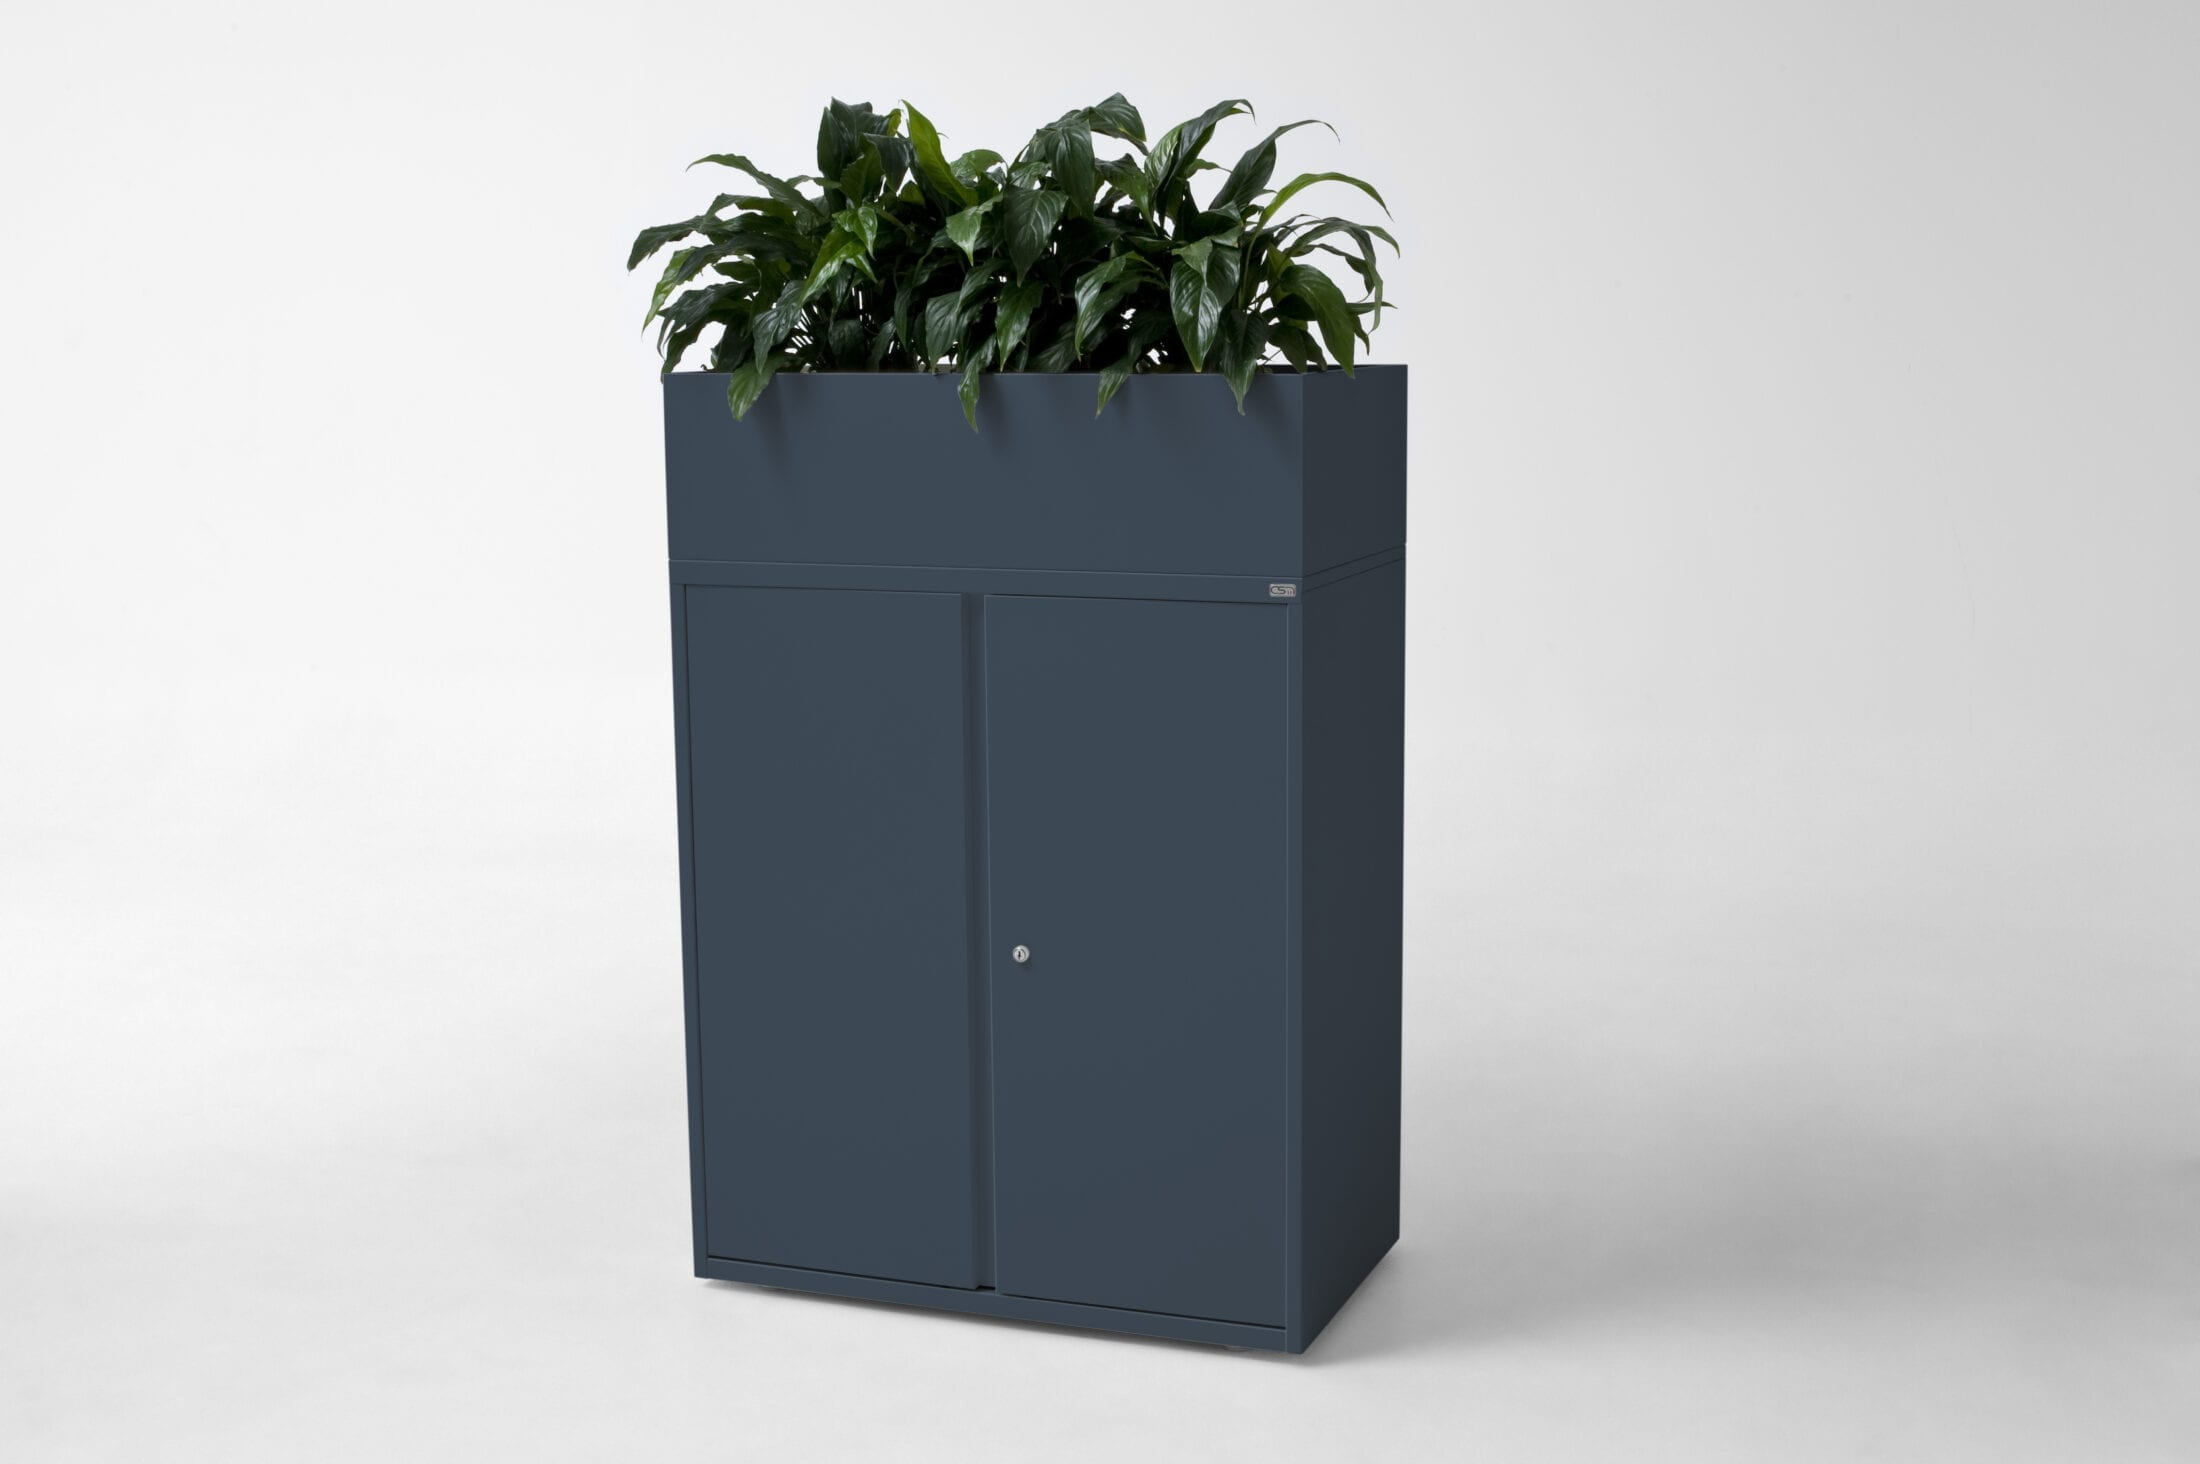 Office Cabinet with Planter